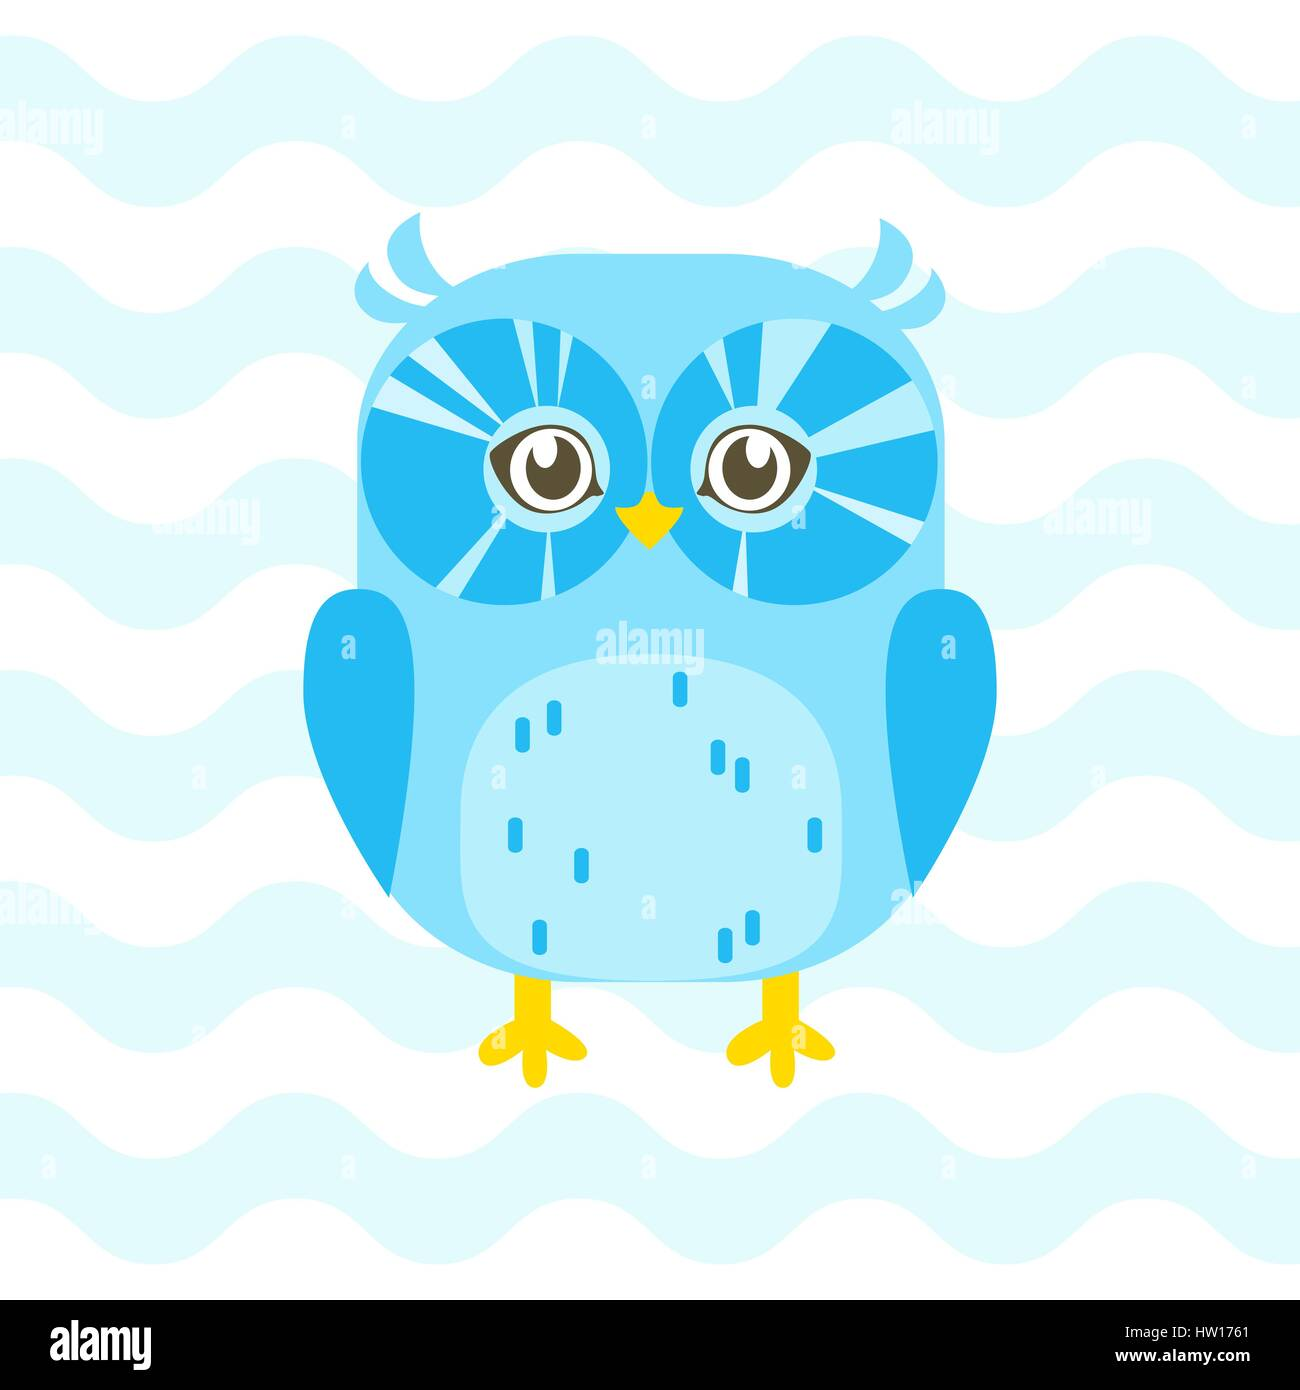 Baby shower illustration with cute blue baby owl on blue baby shower illustration with cute blue baby owl on blue background suitable for baby shower invitation card postcard and nursery wall stopboris Choice Image